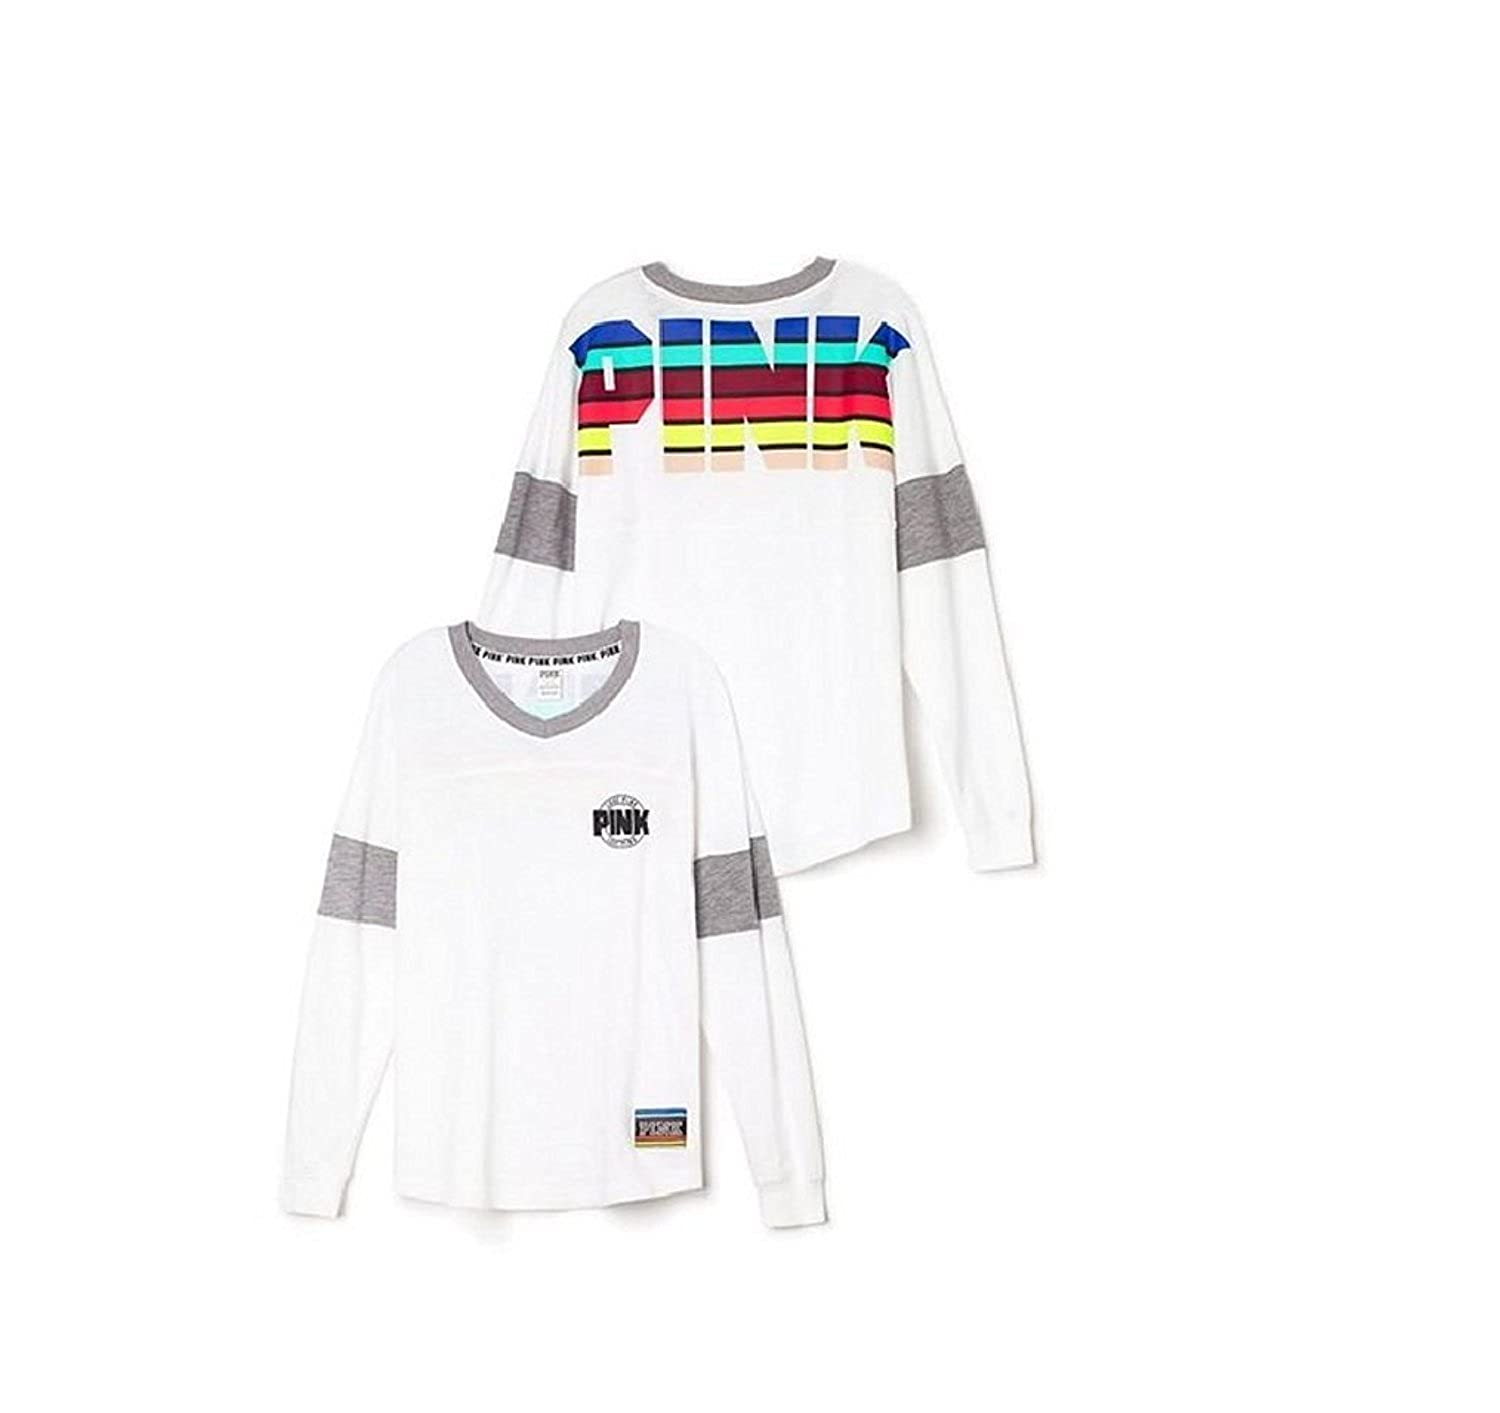 2237ccd935b10 Victoria's Secret PINK Varsity Crew Small White outlet - www ...